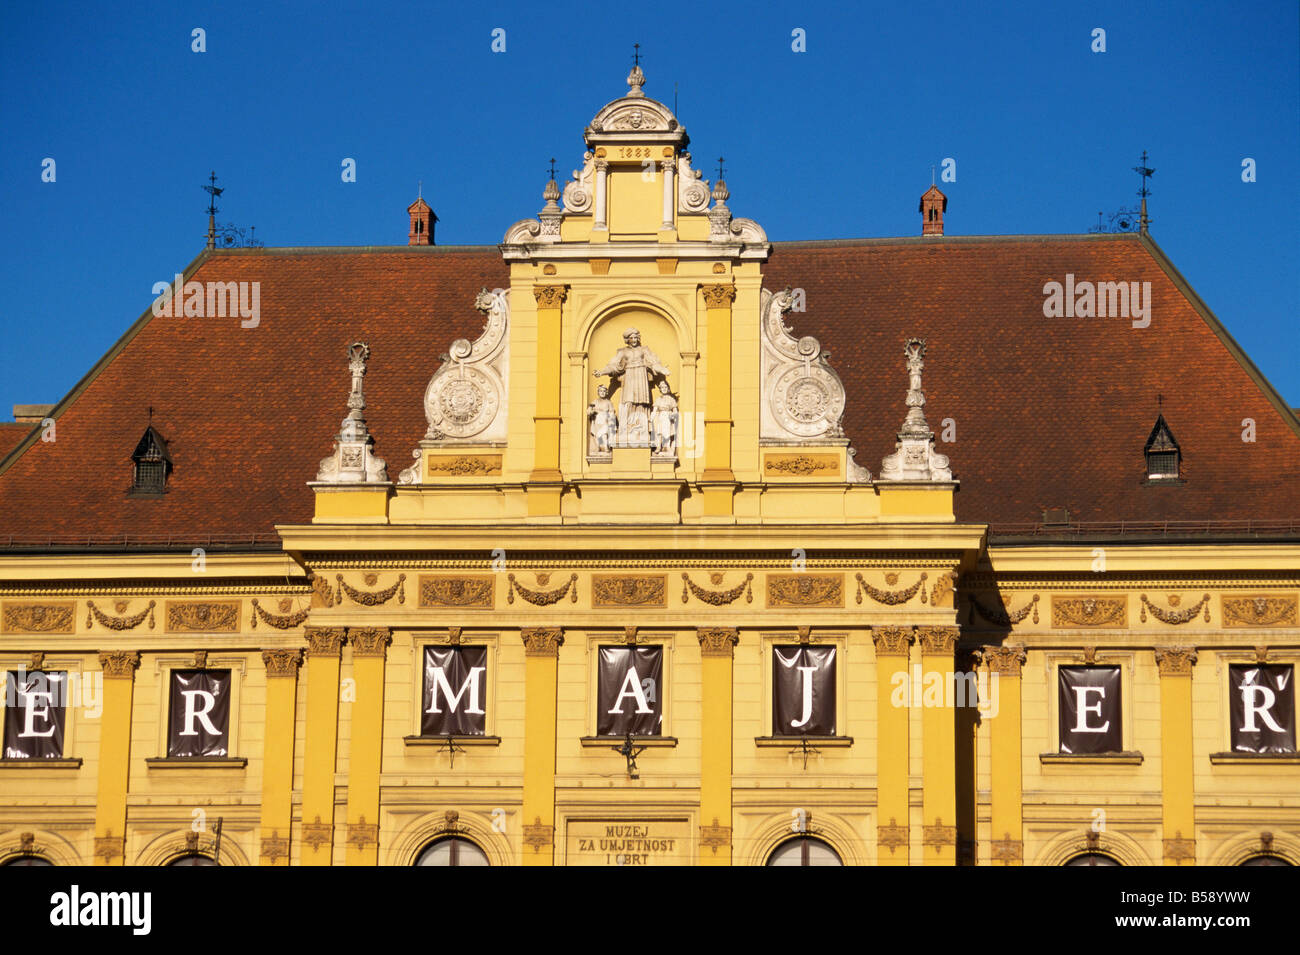 Close up of facade and roof of the building housing Arts and Crafts Museum in Zagreb Croatia Europe - Stock Image